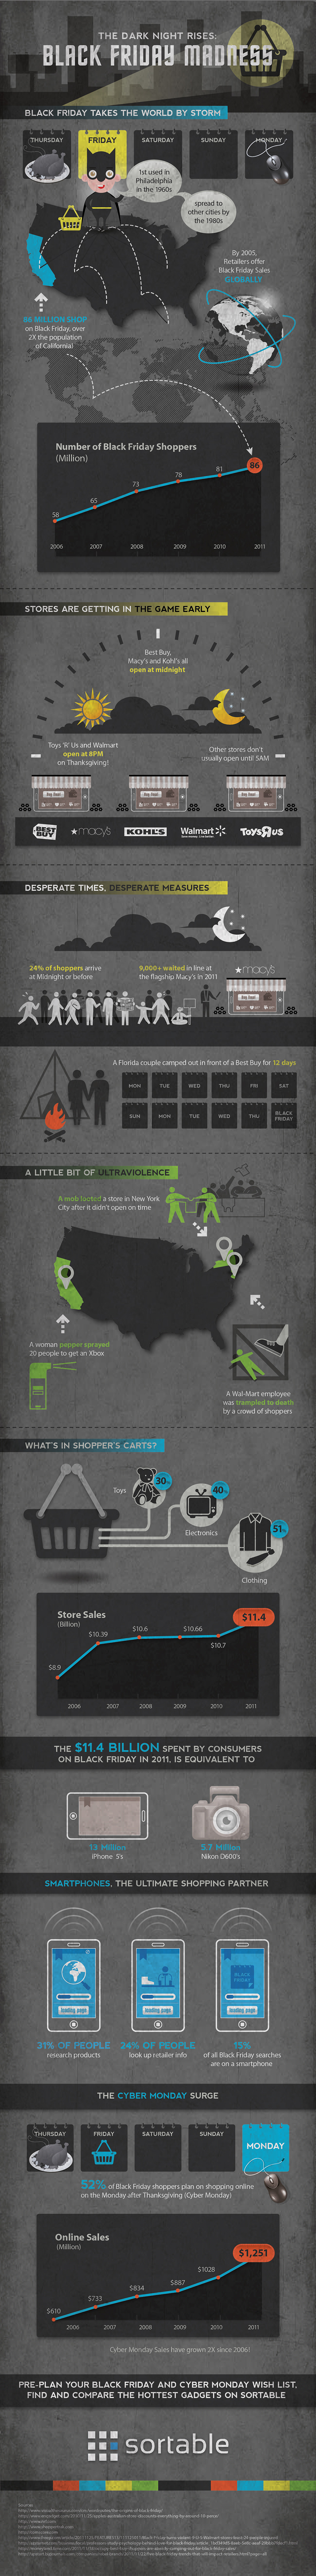 Black Friday Madness [Infographic]